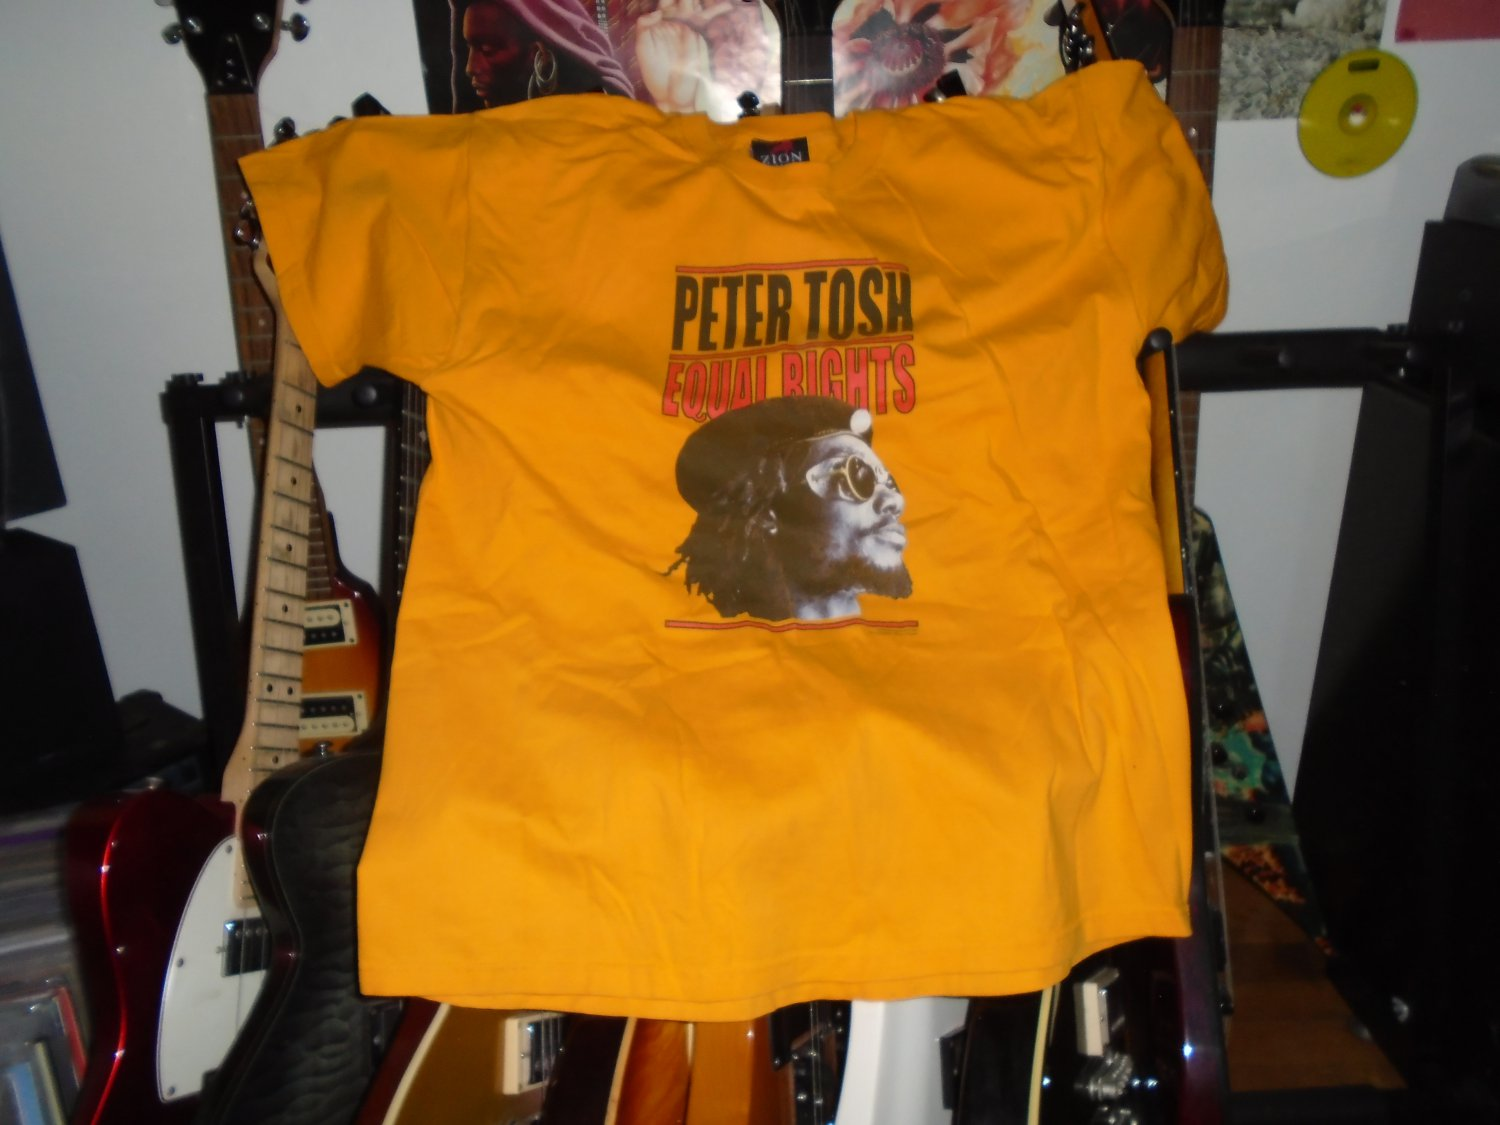 wailers] peter tosh equal rights VINTAGE 2003 xl reggae tee